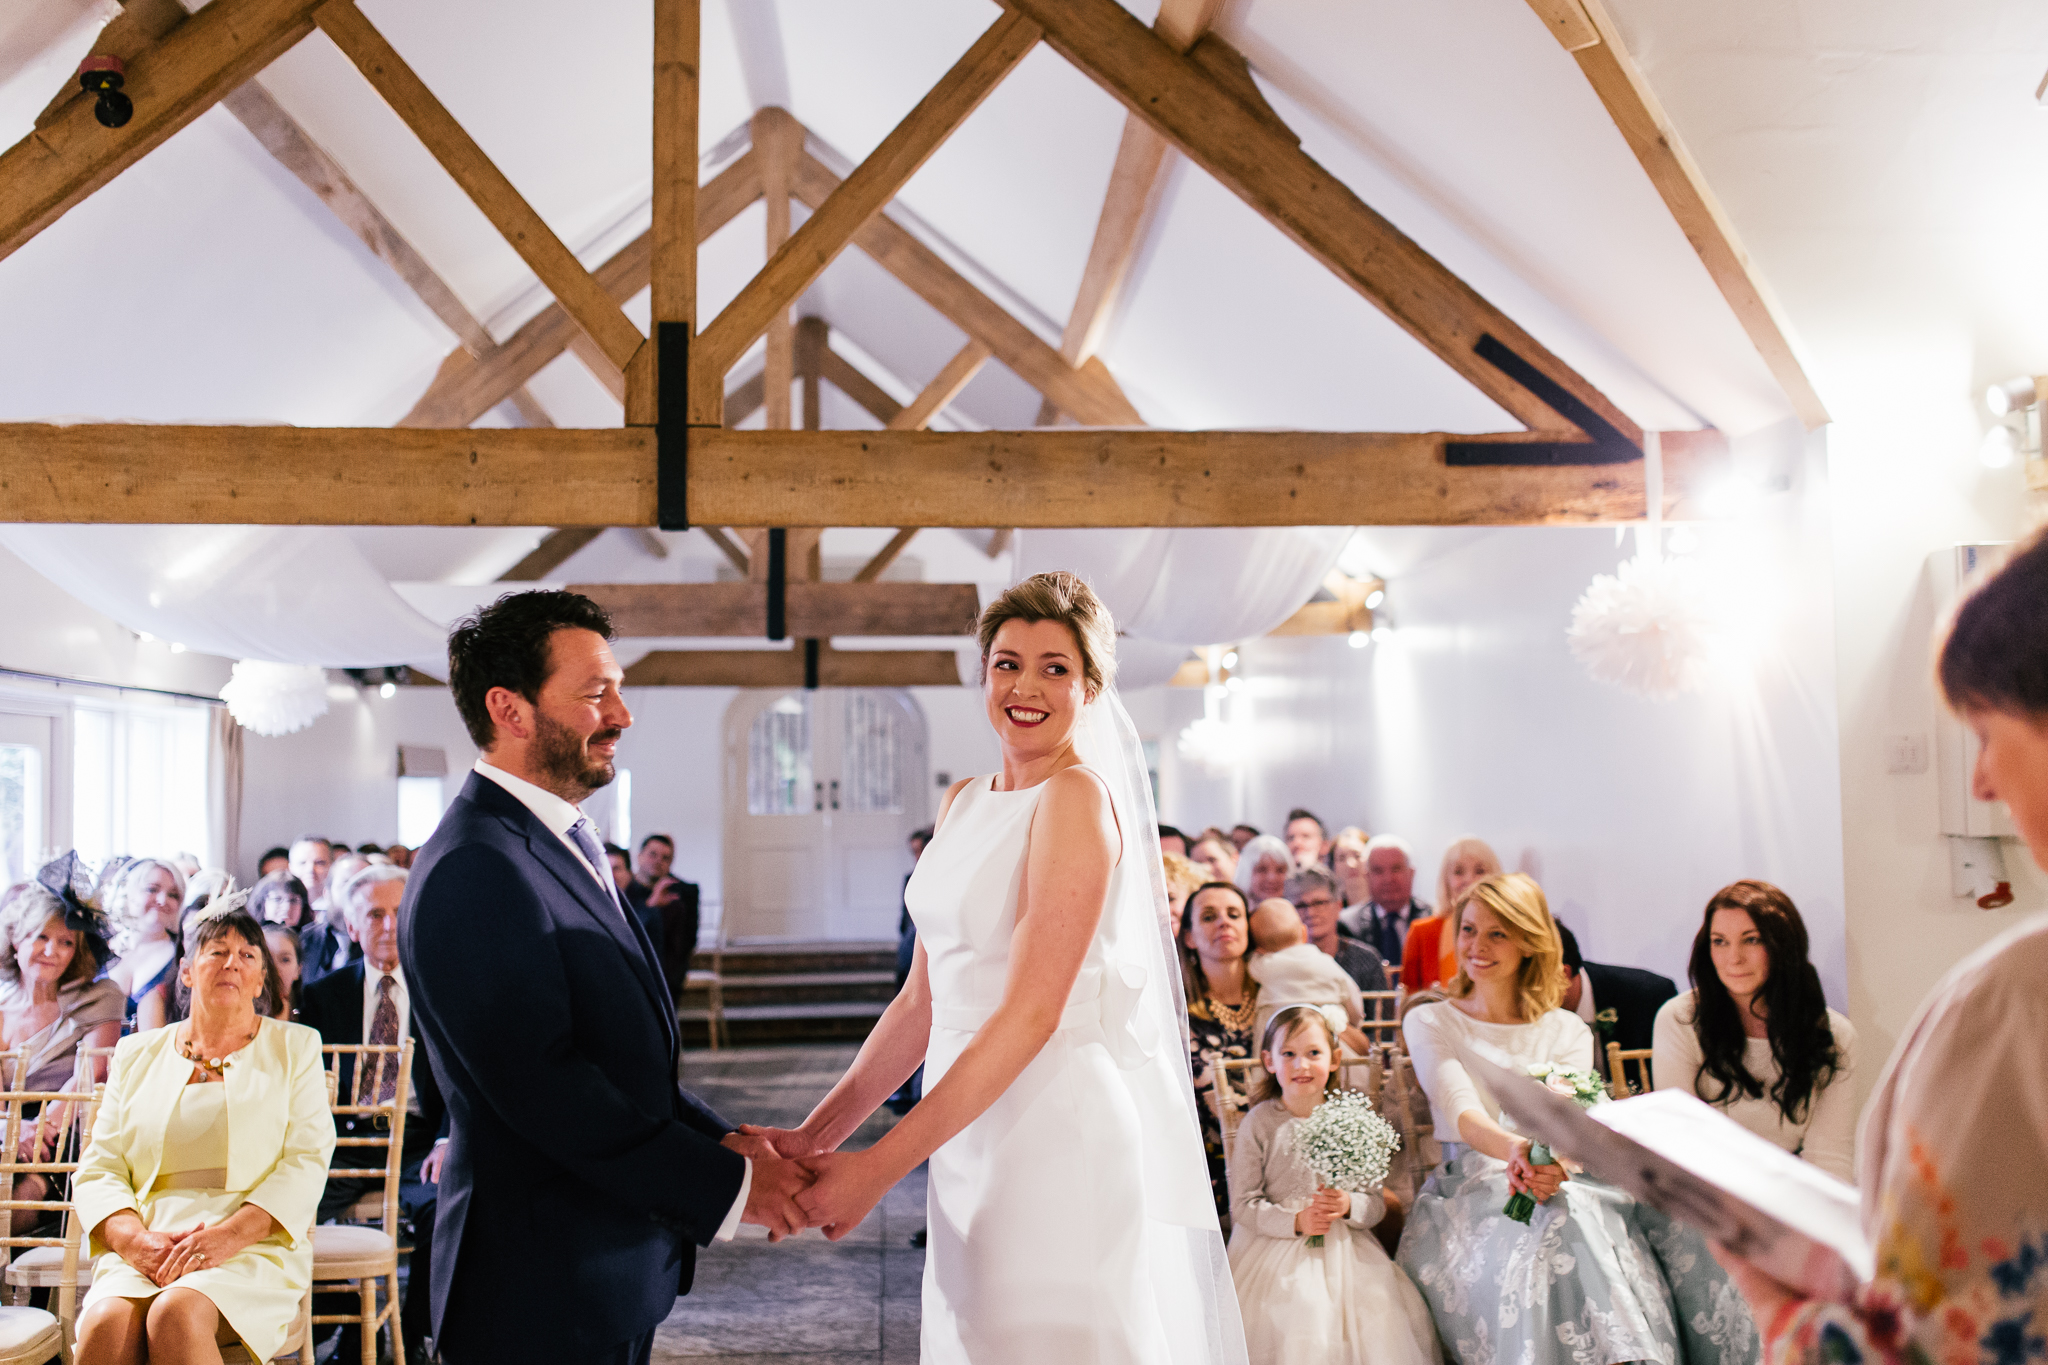 Farbridge Barn Wedding Creative Alternative Photo Chichester Joanna Nicole Photography (32 of 133).jpg